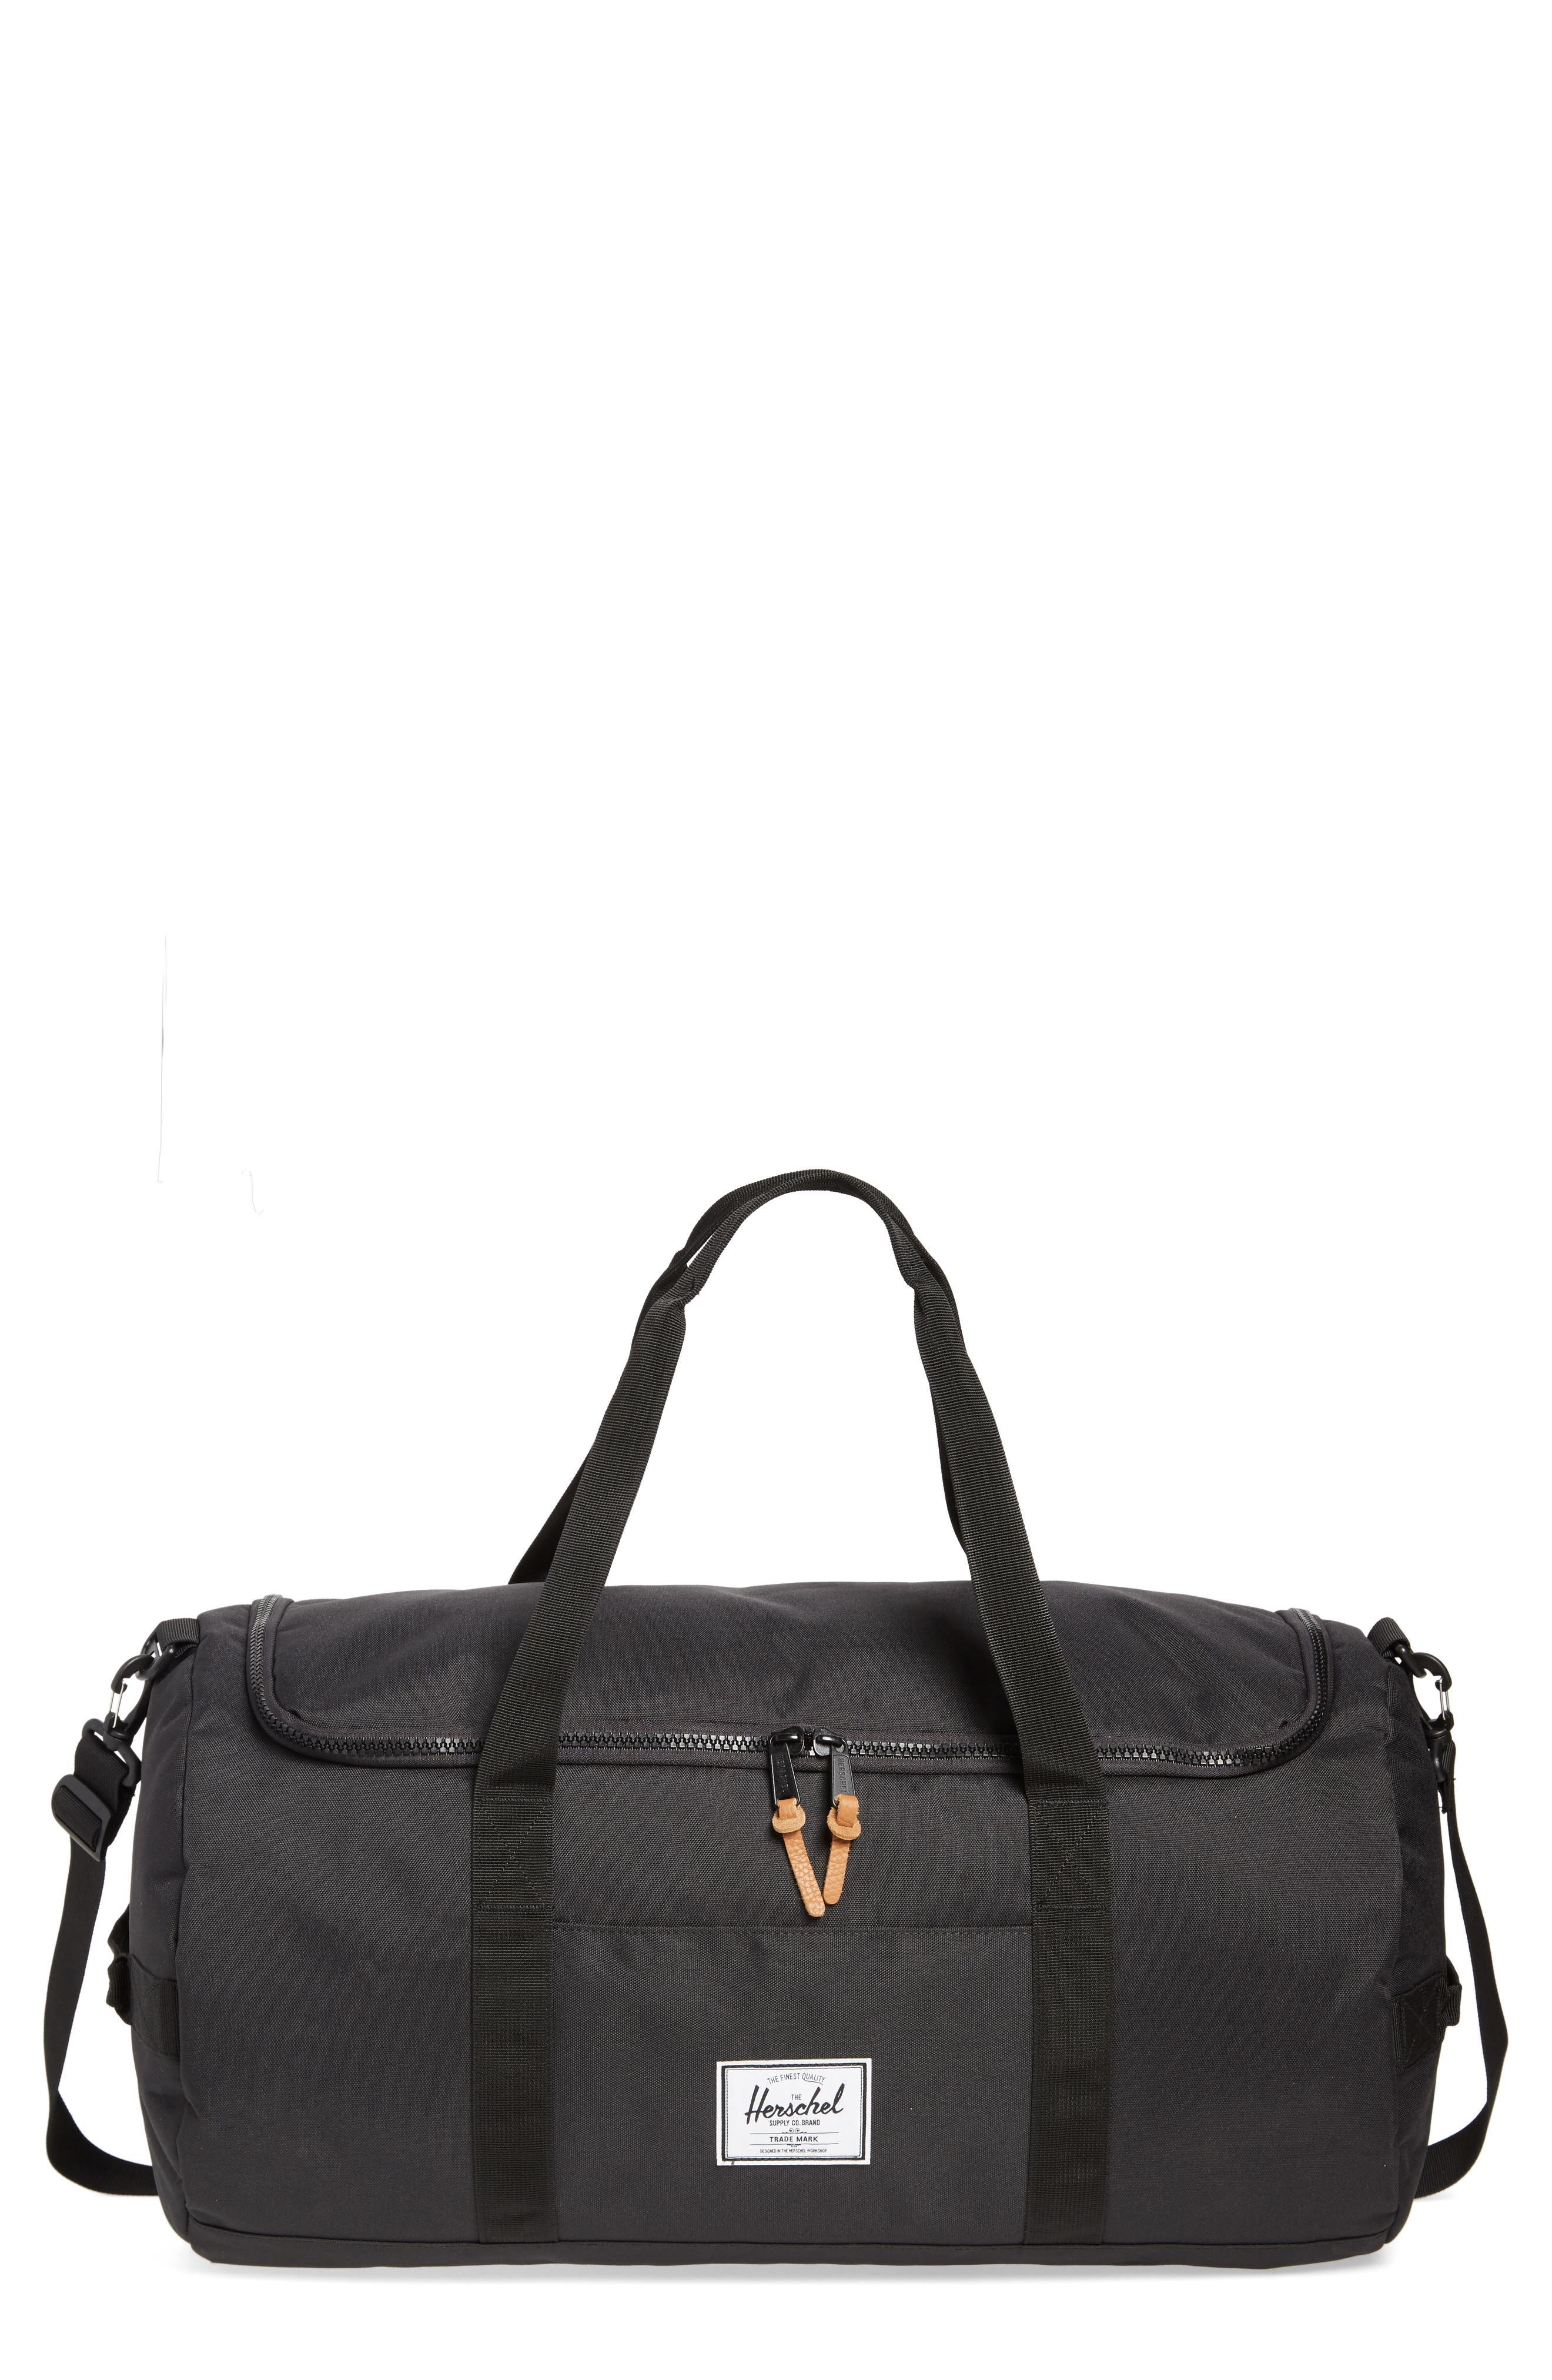 Sutton Duffel Bag,                             Main thumbnail 1, color,                             BLACK